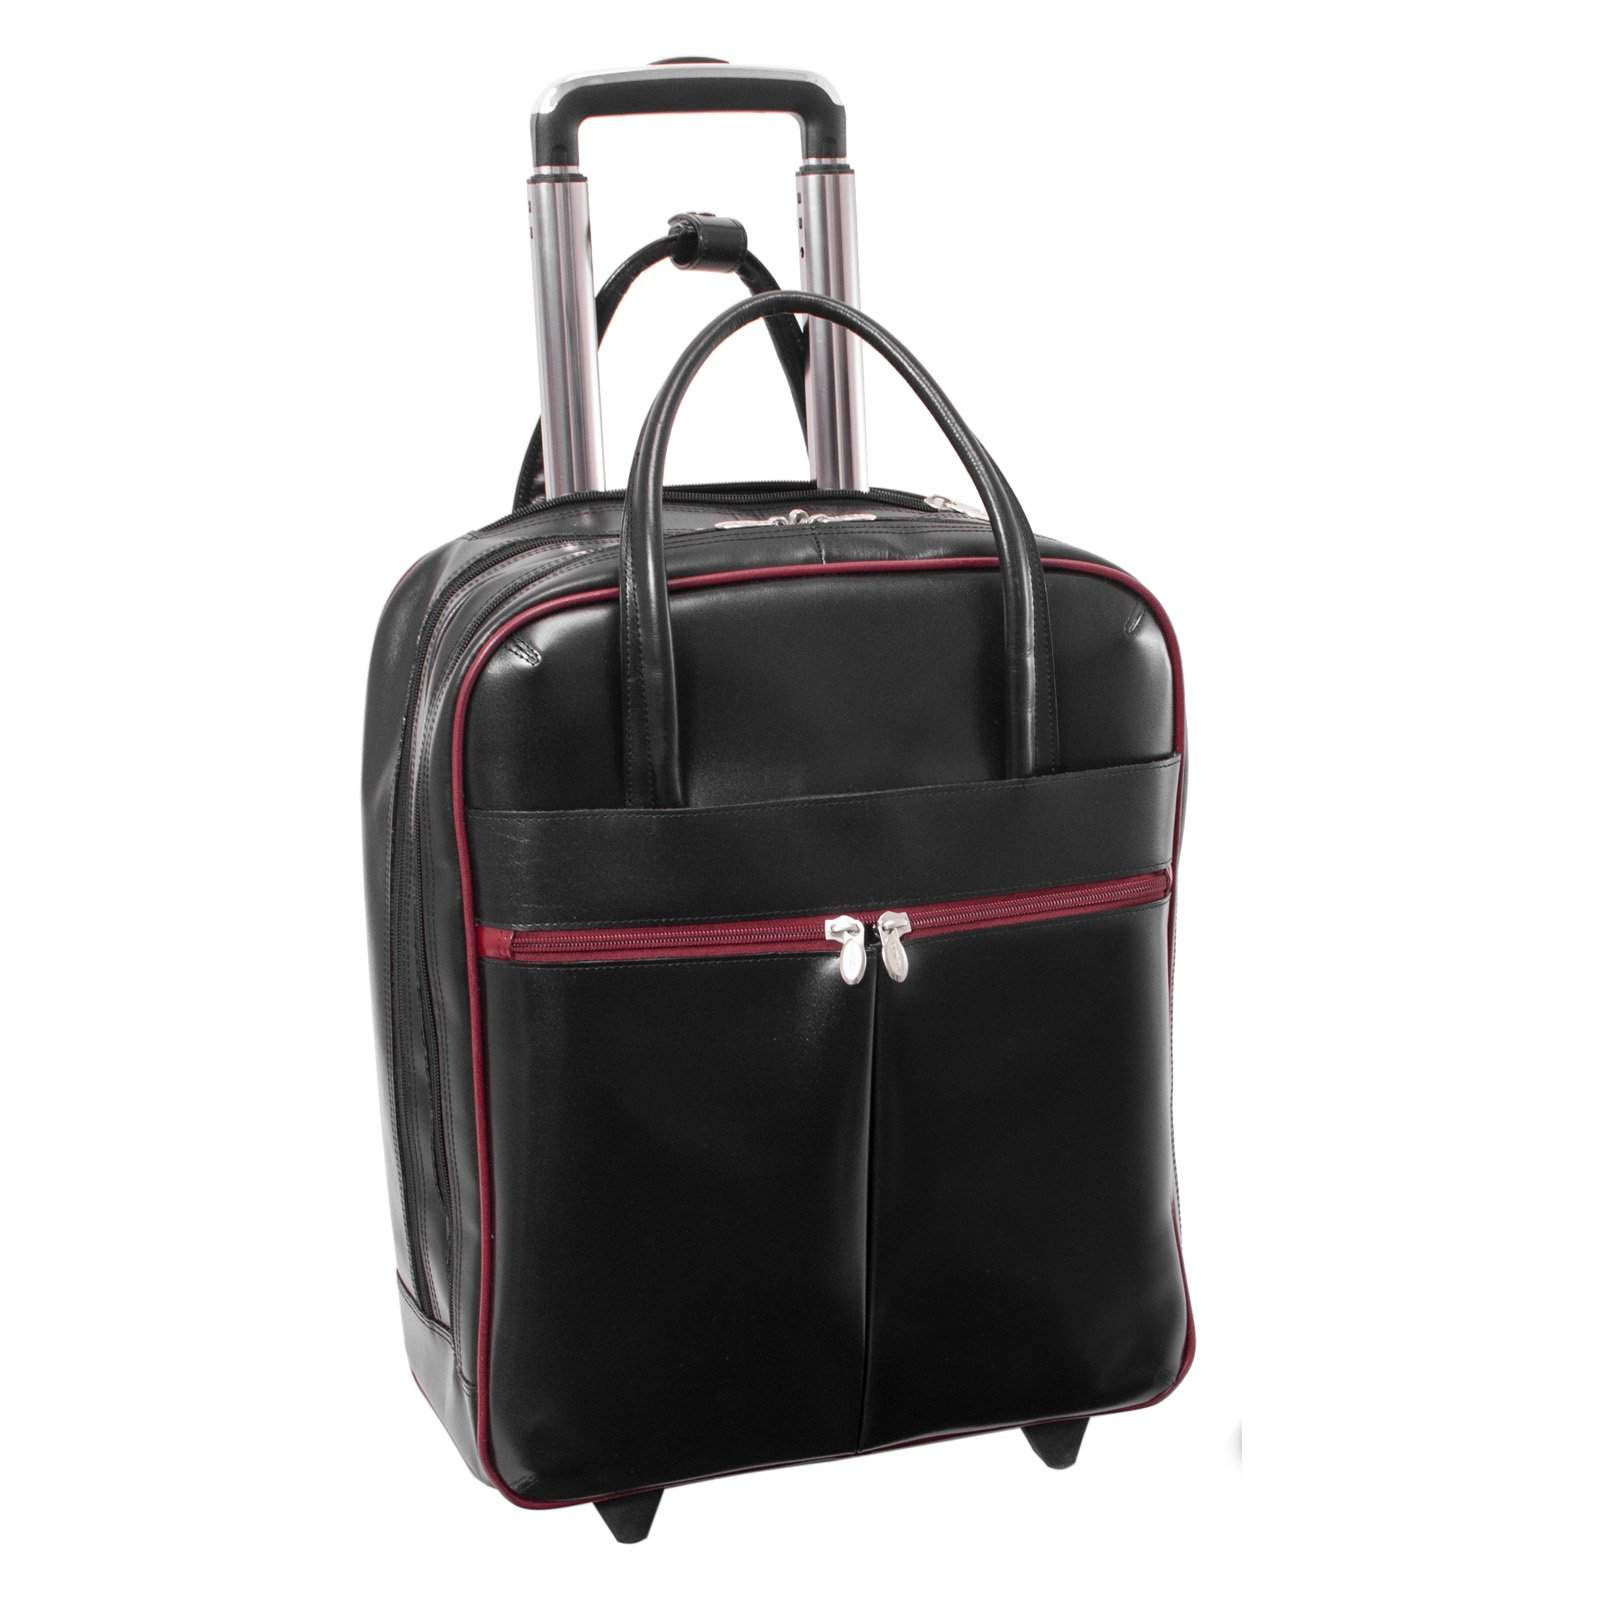 McKlein USA Volo 15.6 in. Leather Laptop Overnighter Wheeled Carry-on Bag by McKleinUSA